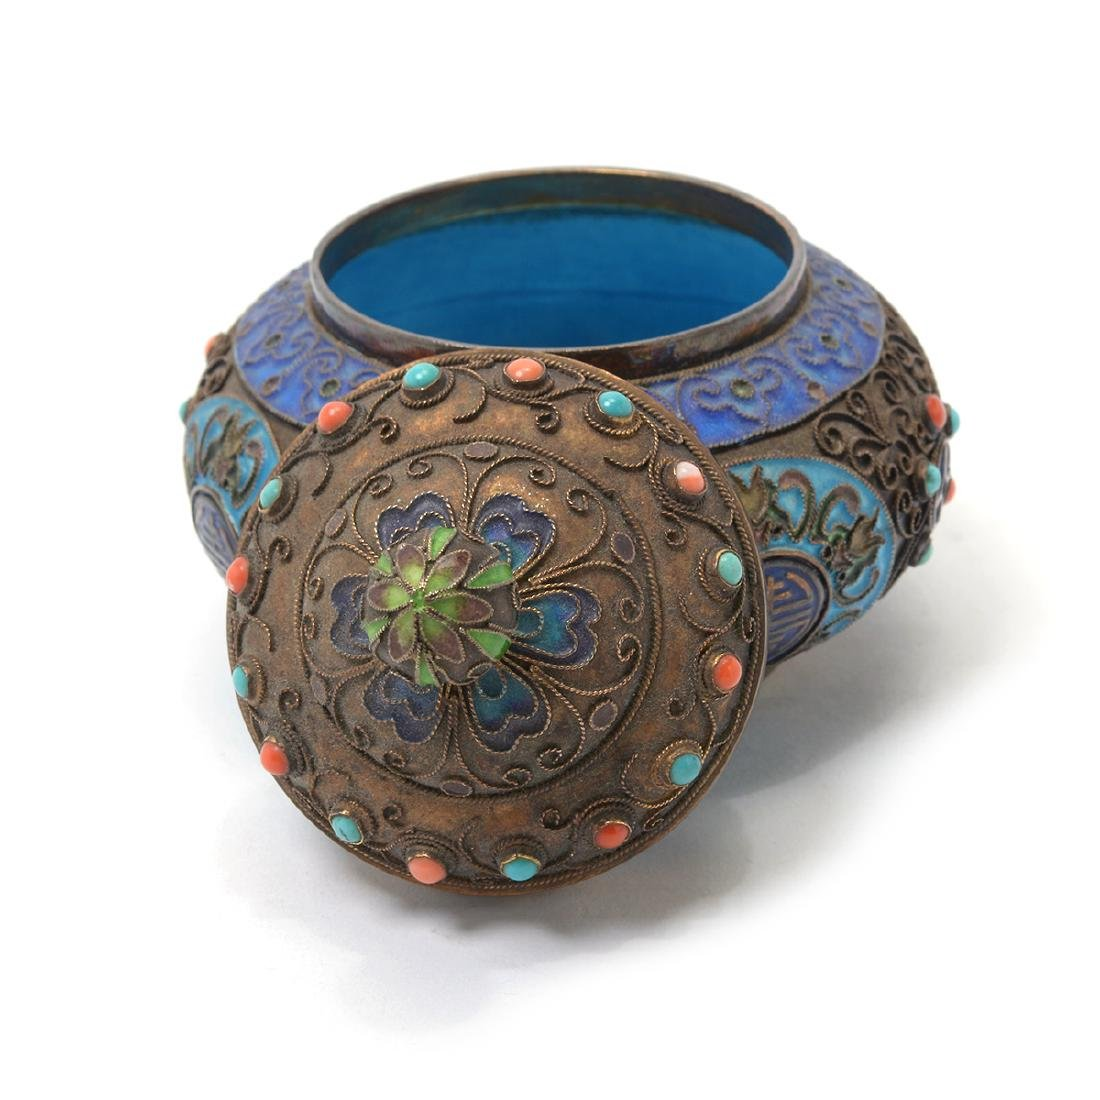 Small Enameled Silver Jar w/ Coral & Turquoise Inlay* - 4